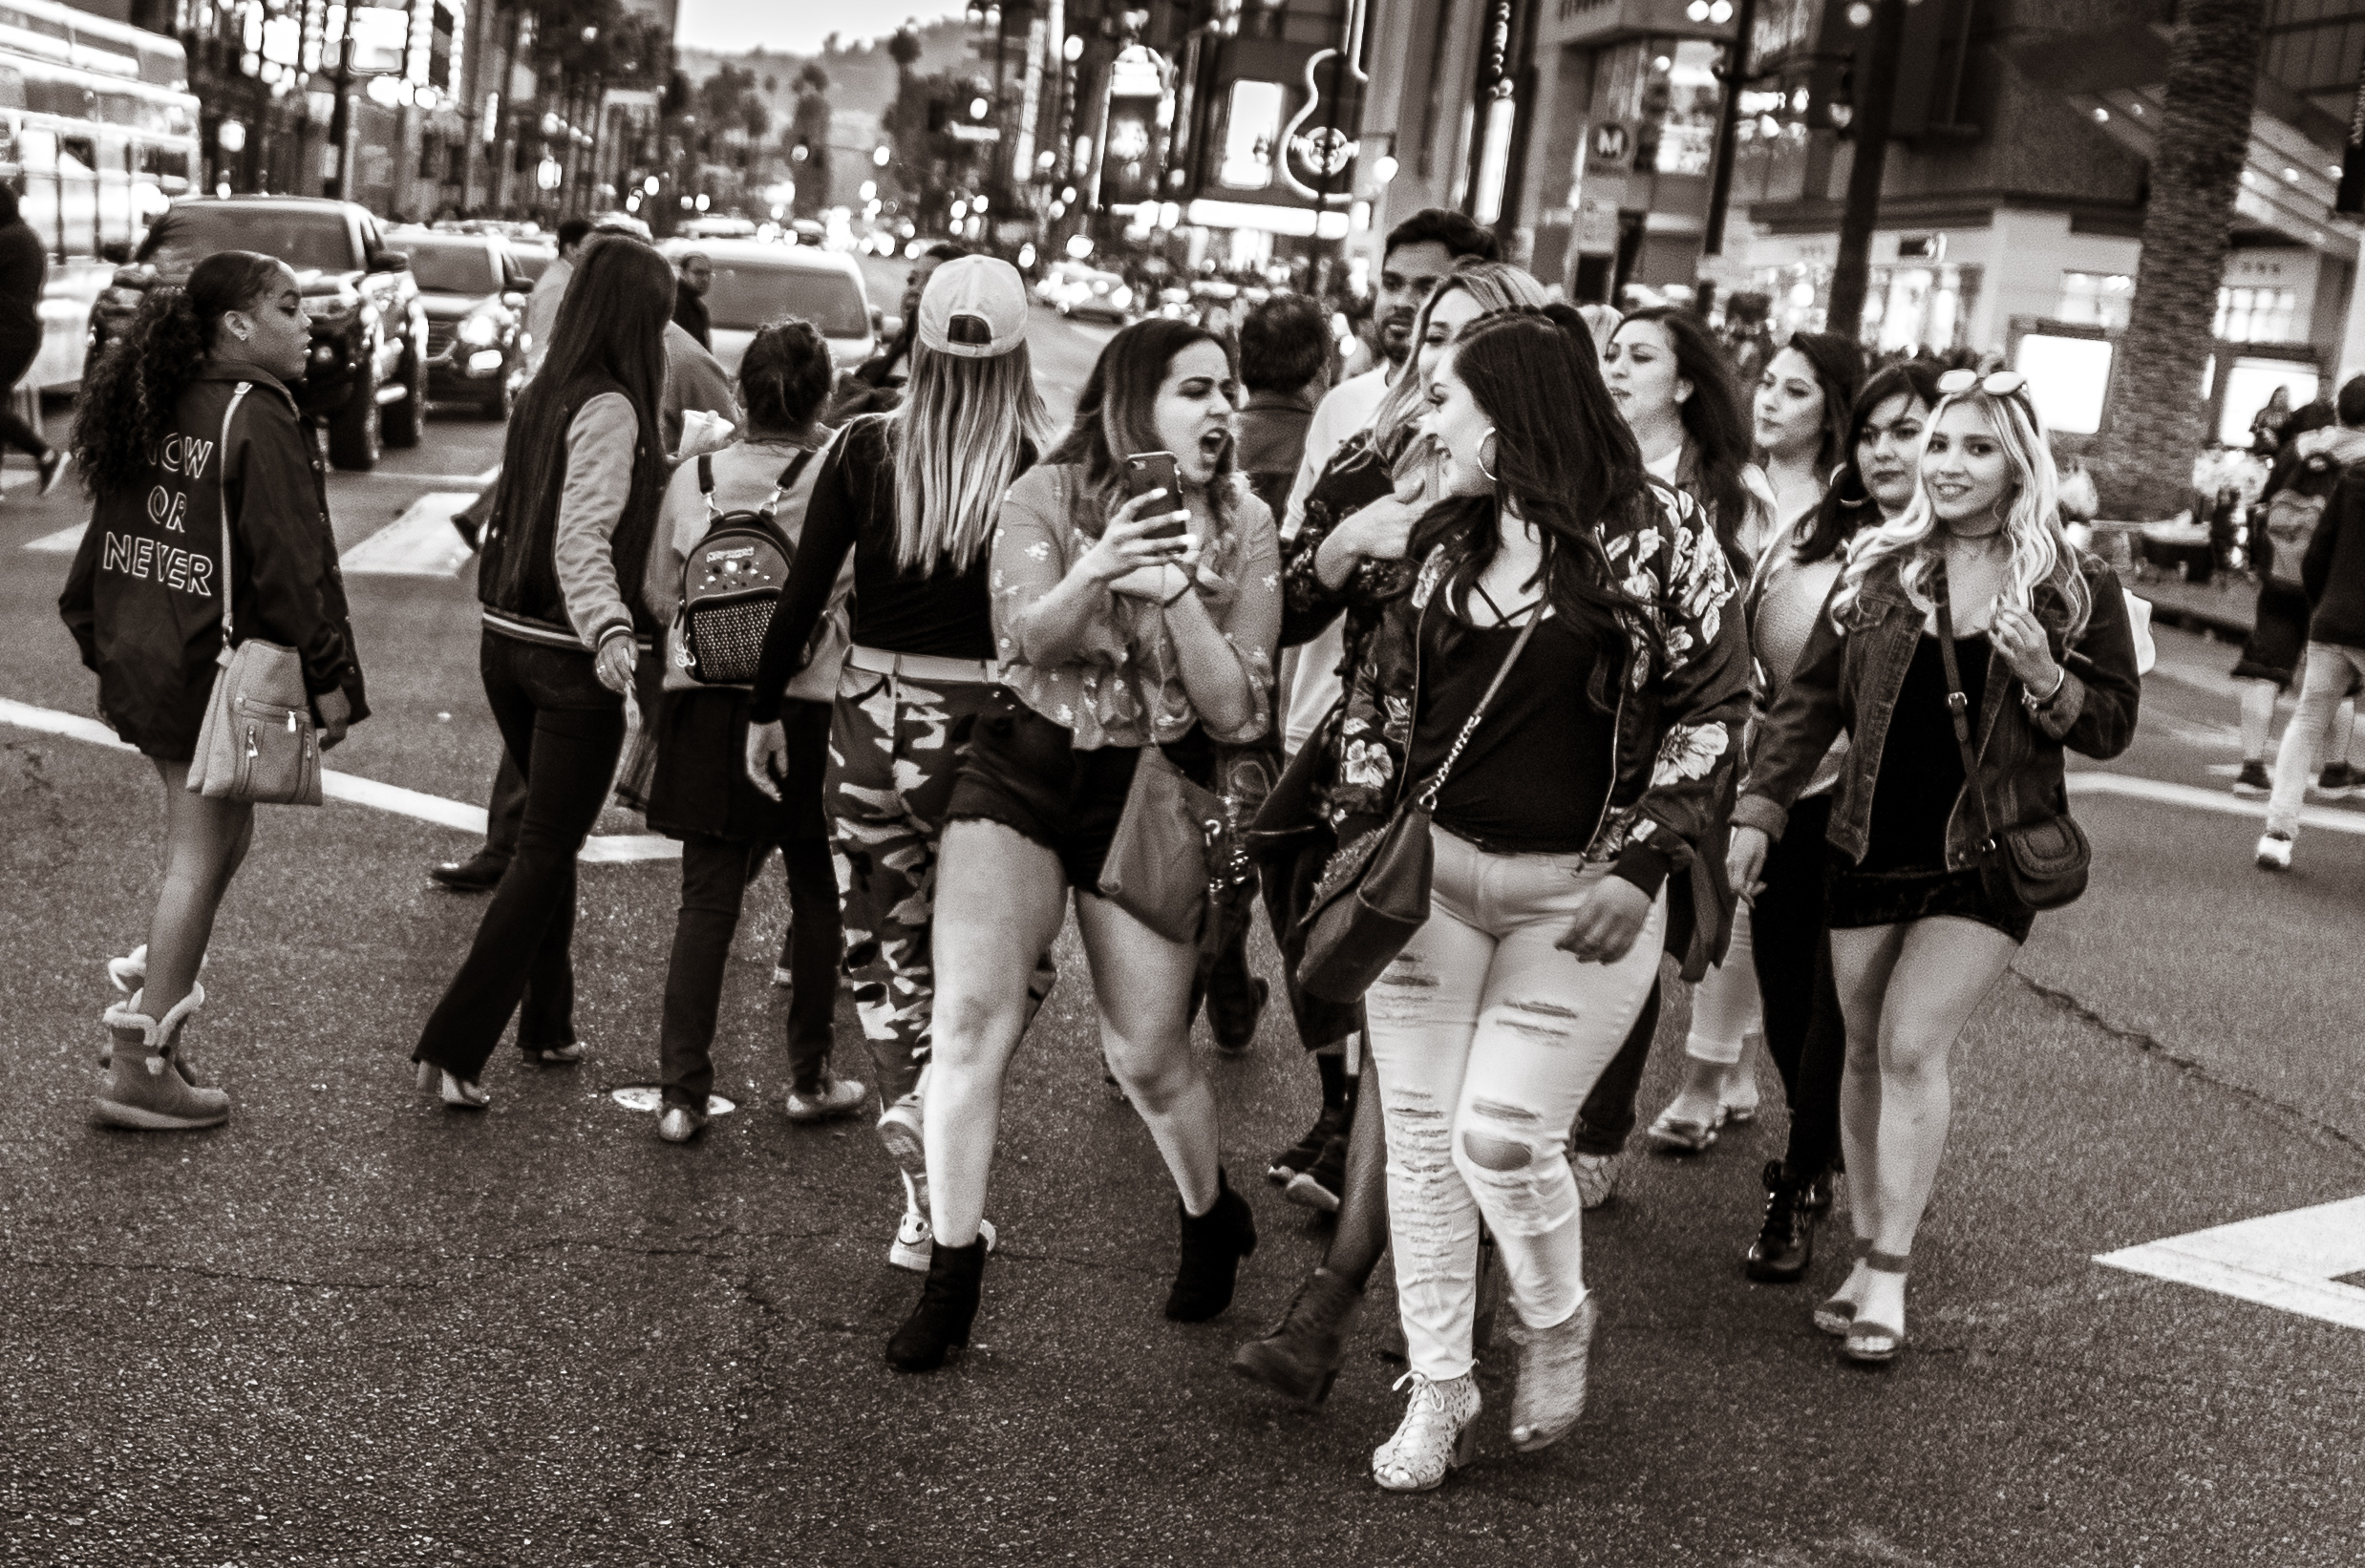 a group of women cross the street at the 4-way crossing at Hollywood & Highland in Hollywood, Los Angeles, CA. One person points at something on her cell phone and screams something to her friend